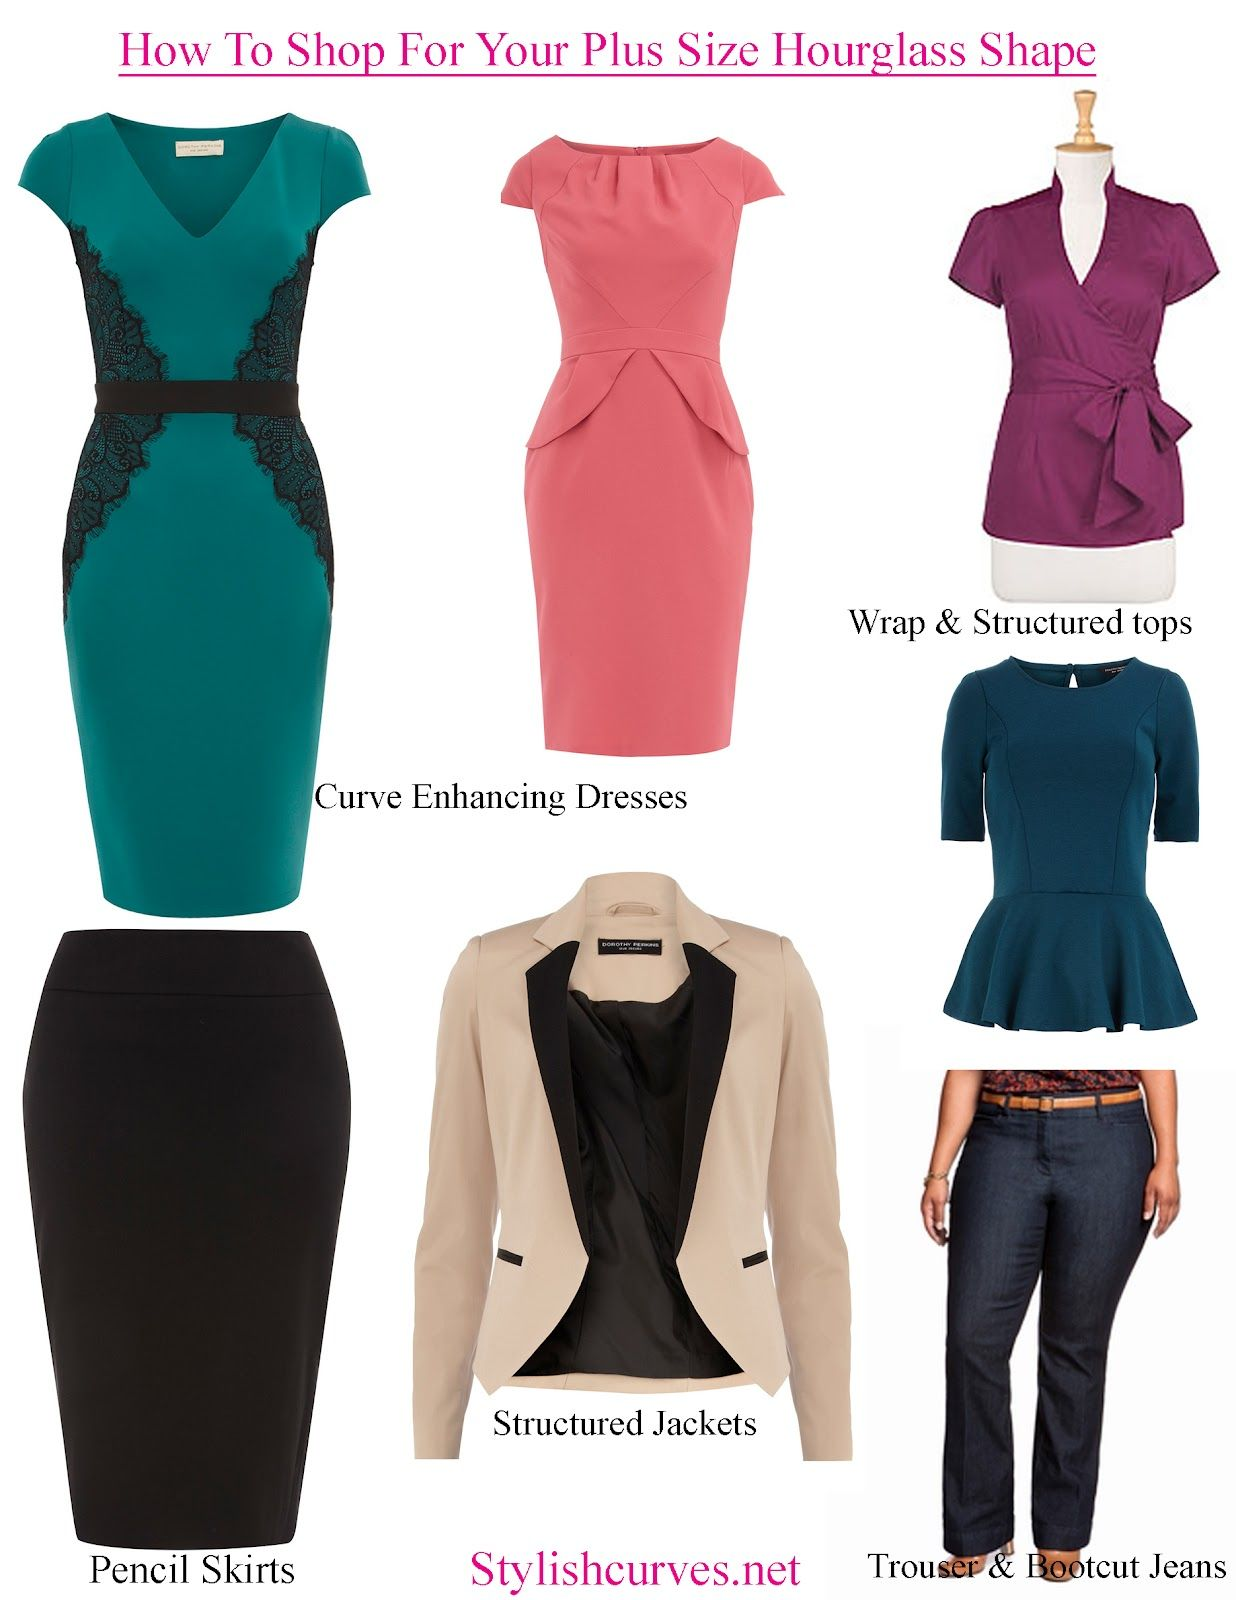 Outfits For The Apple Shape Shopping How To Dress Your Shape When